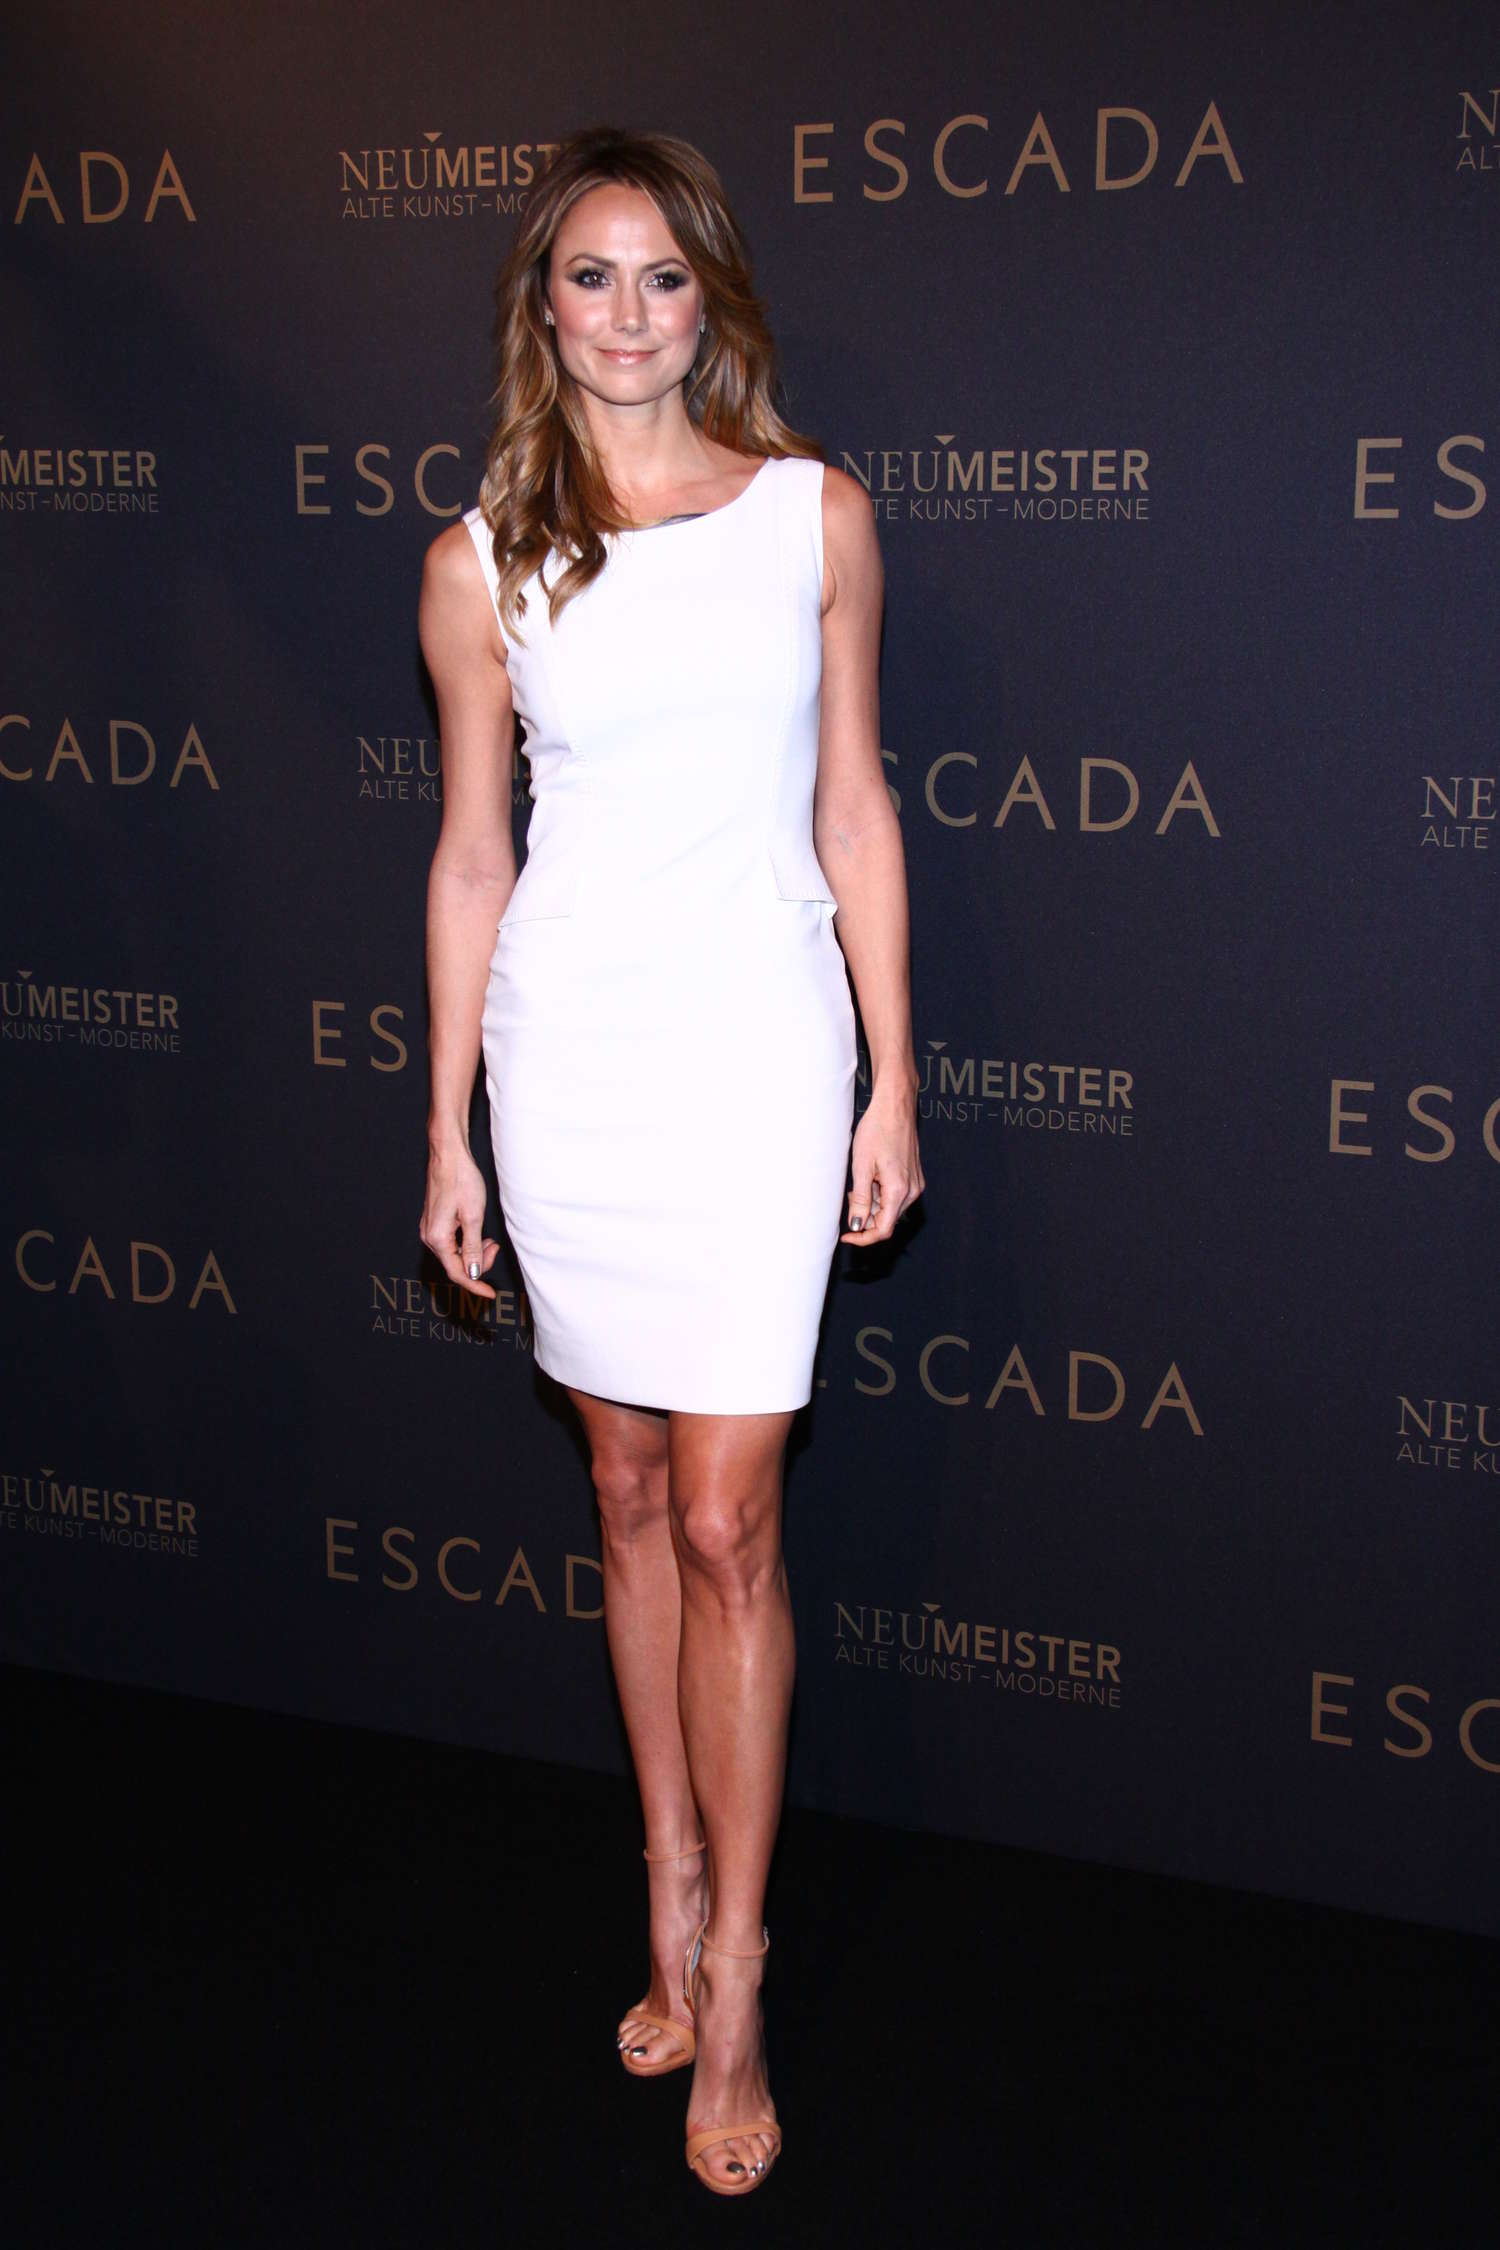 Stacy Keibler grand opening of the Escada Flagship store in Berlin